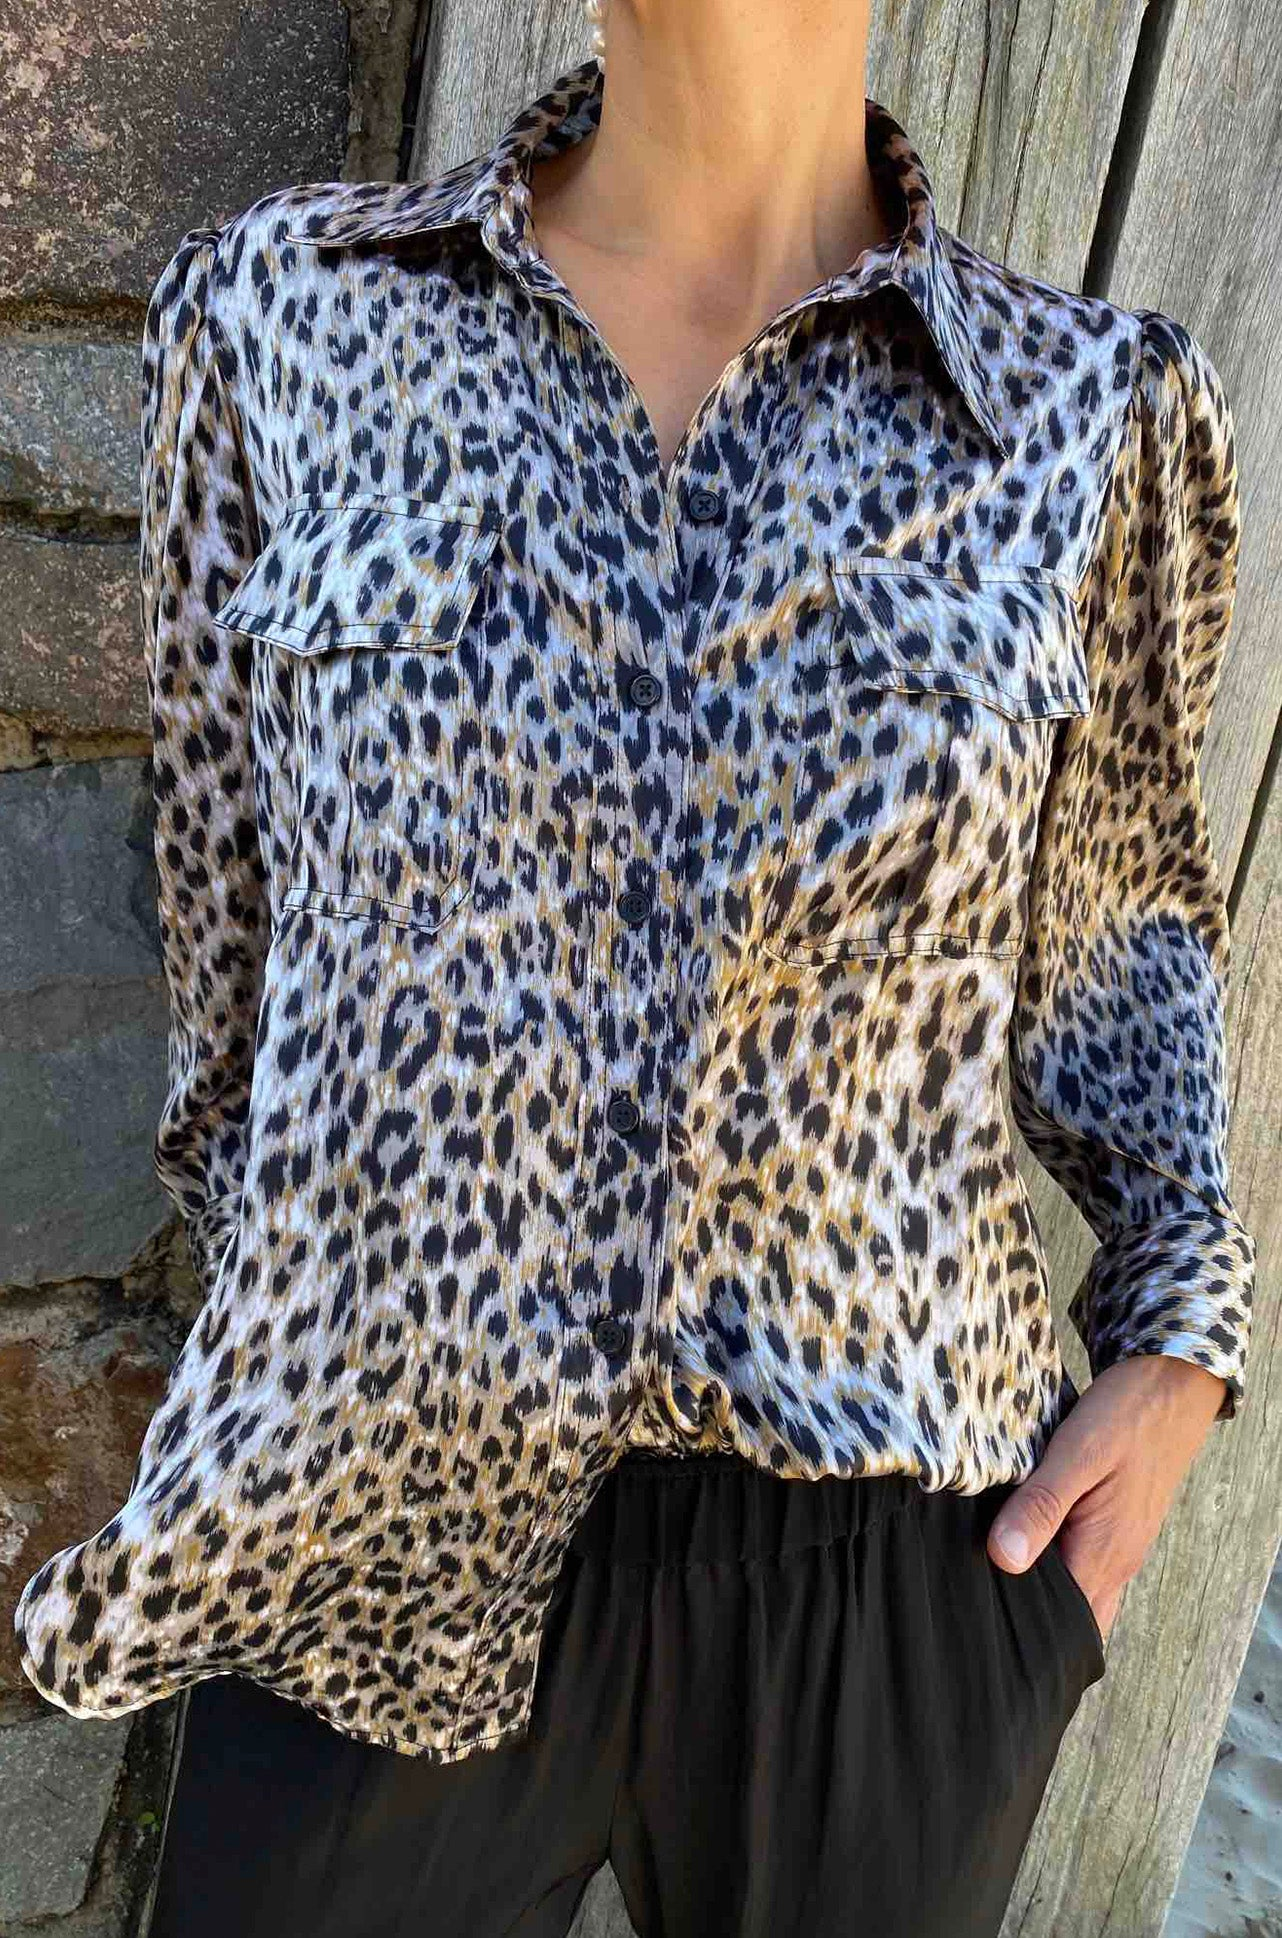 Mela Purdie - Plantation Shirt in Snow Leopard